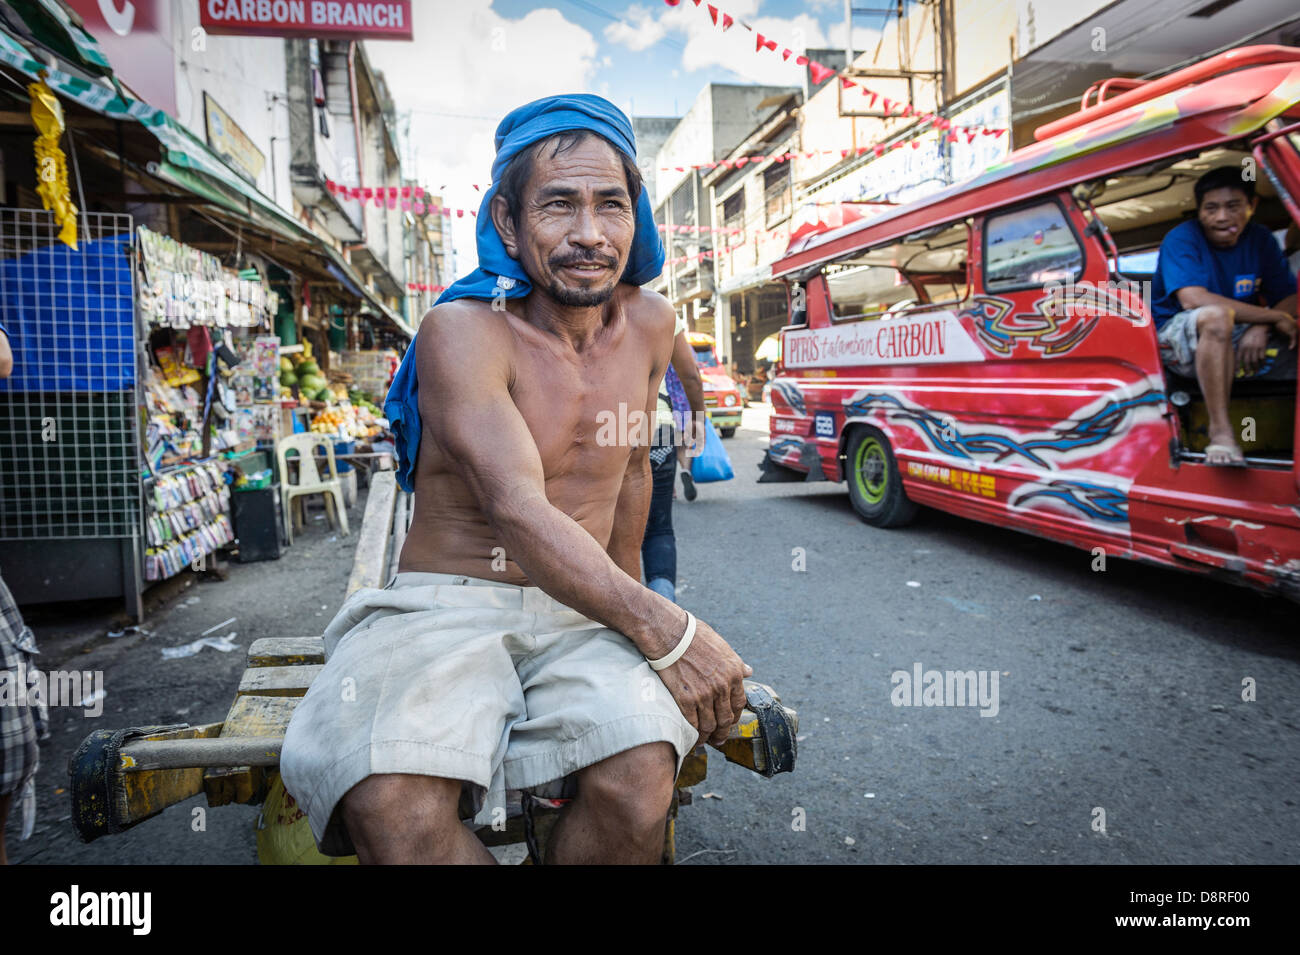 Man sitting on his wheelbarrow waiting for clients, Carbon market, Cebu, Philippines - Stock Image